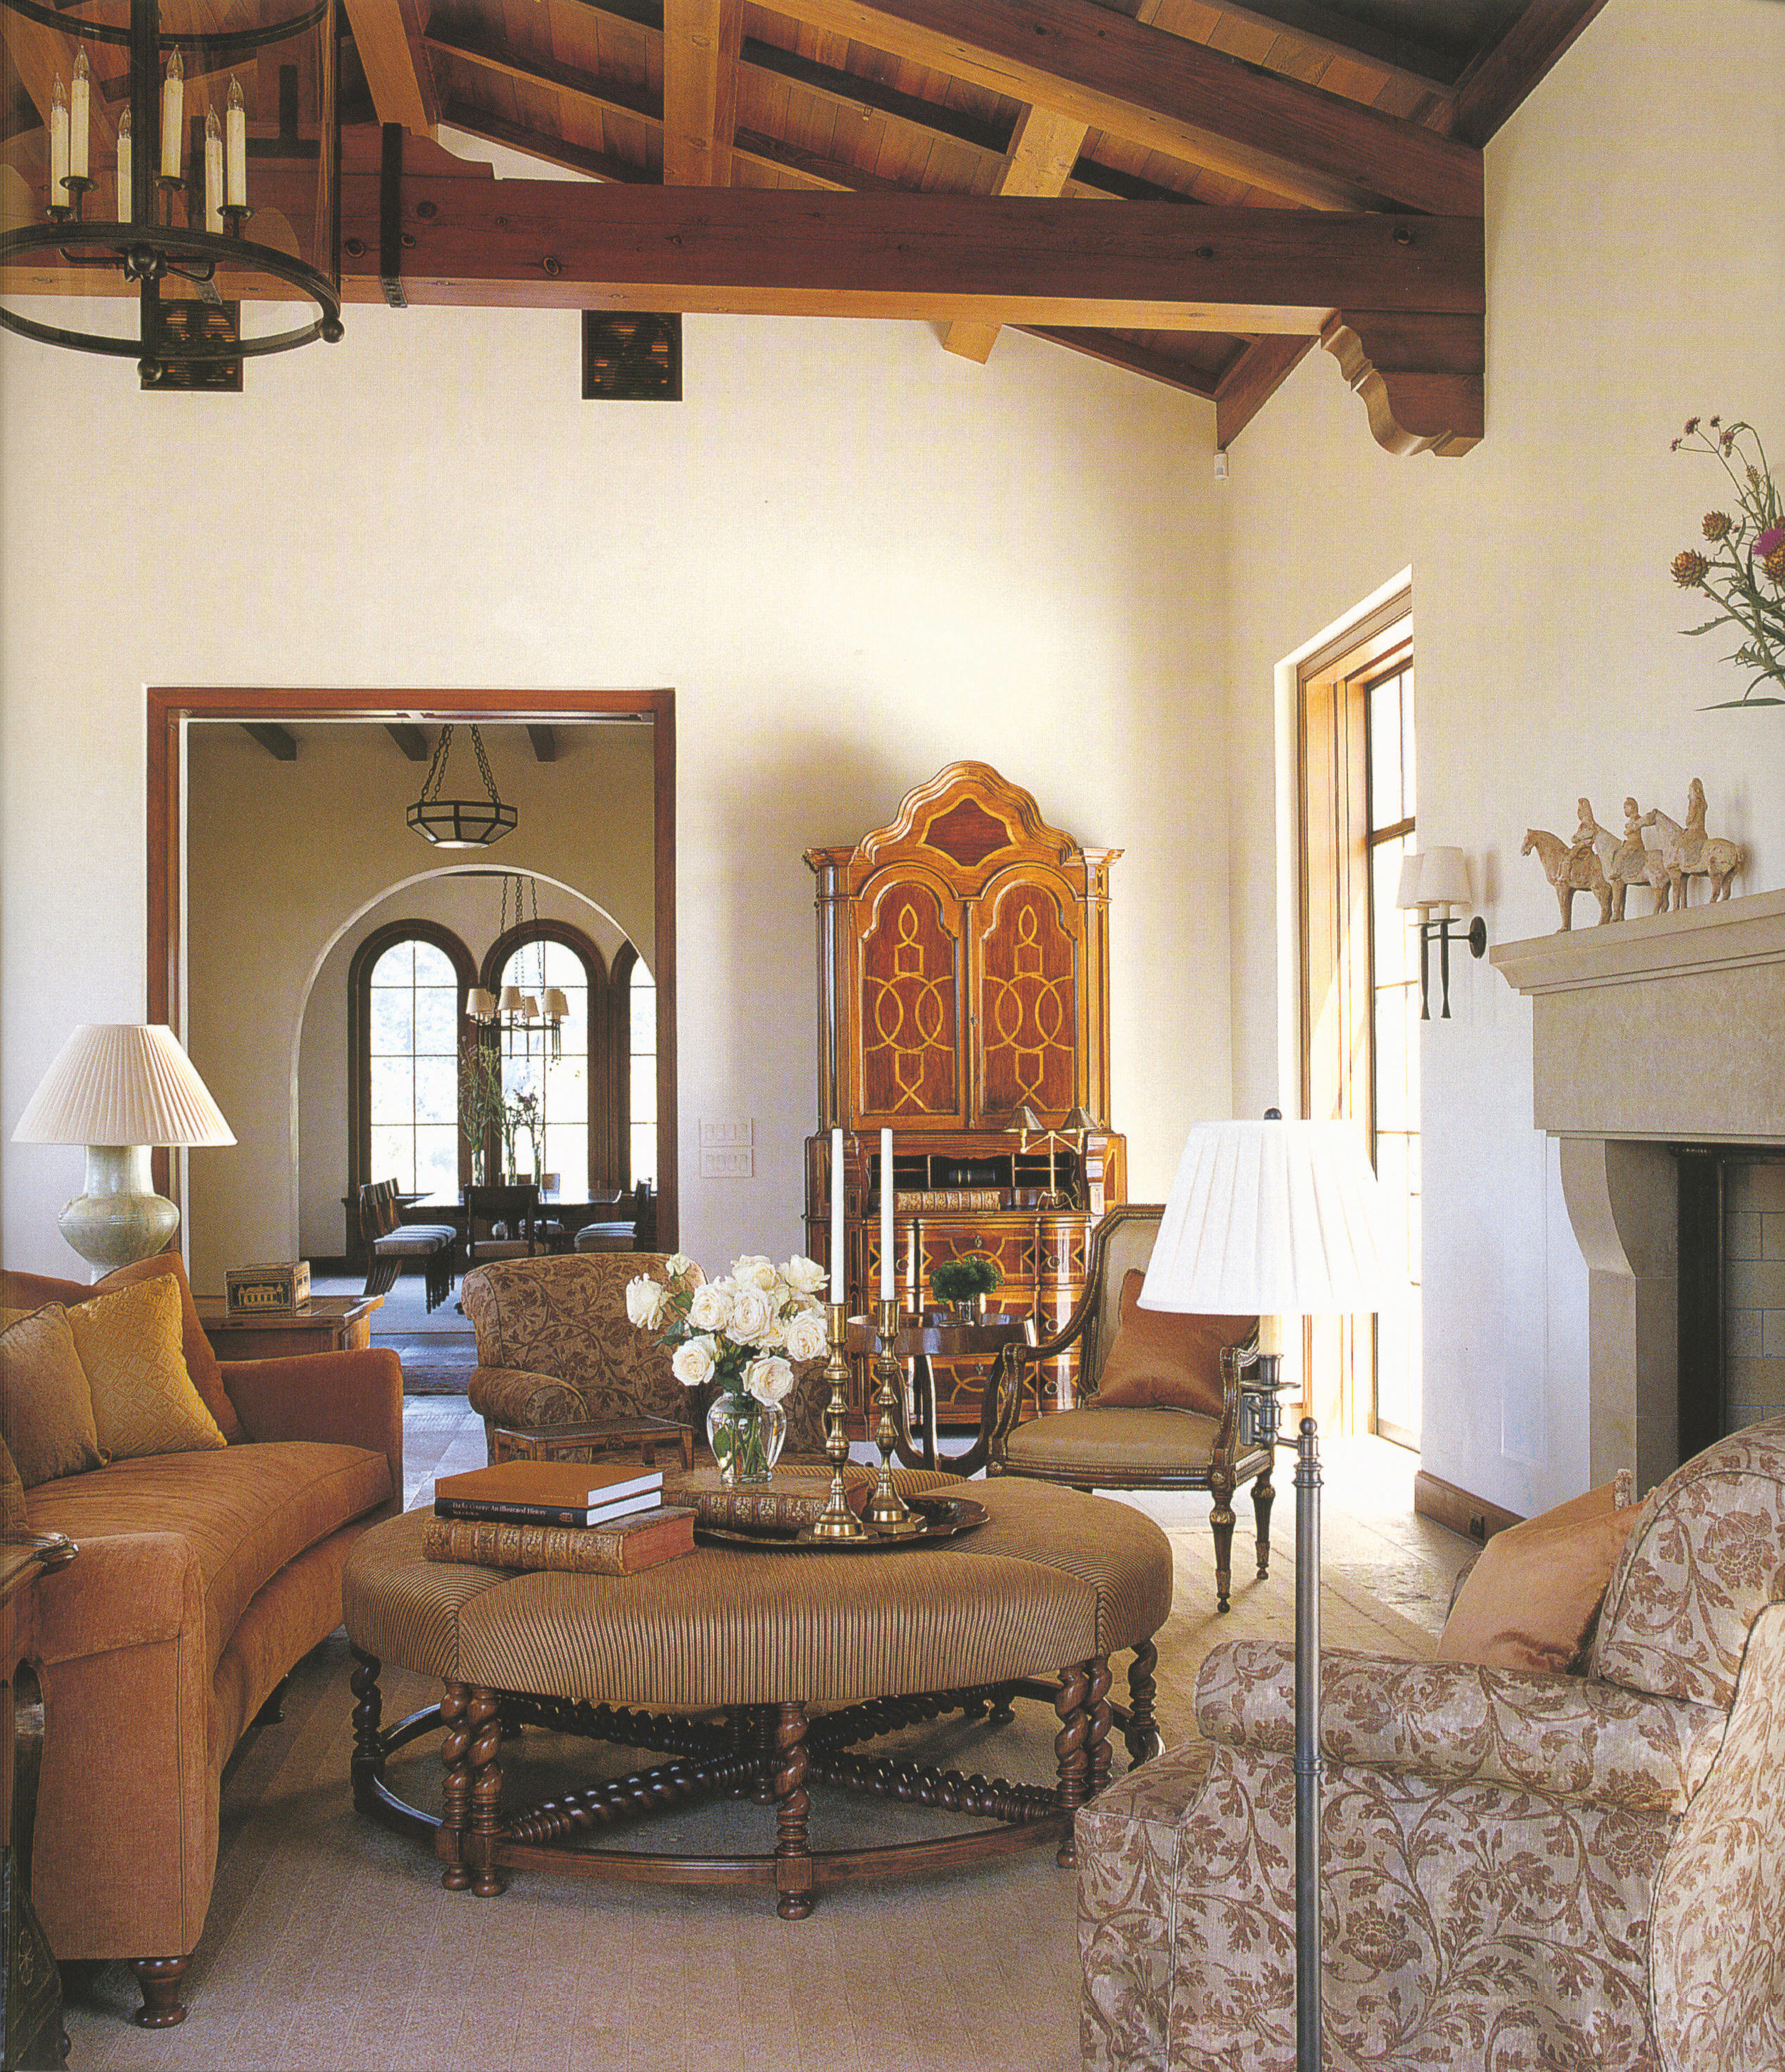 Spanish Revival Interior Design Spanish Revival The Wiseman Group